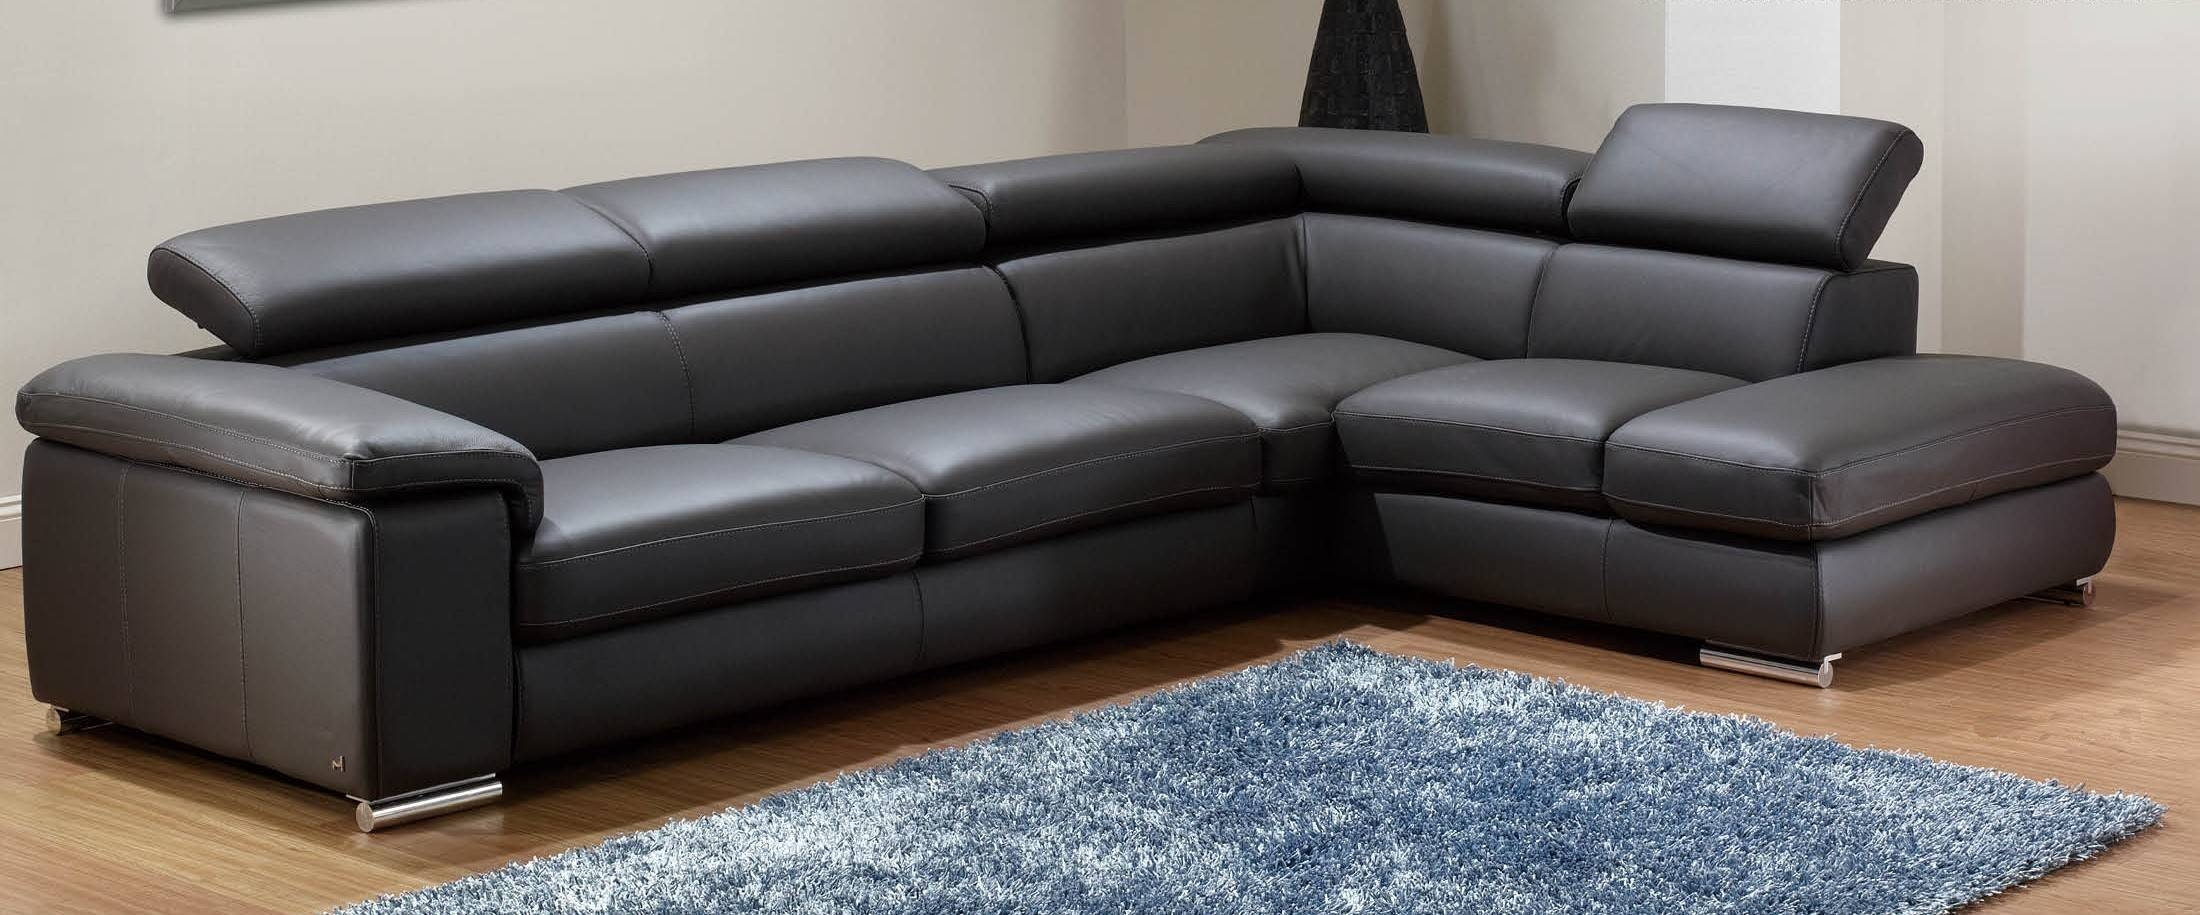 Black Sofas Cheap Natural Cheap Designs For Apartments With White